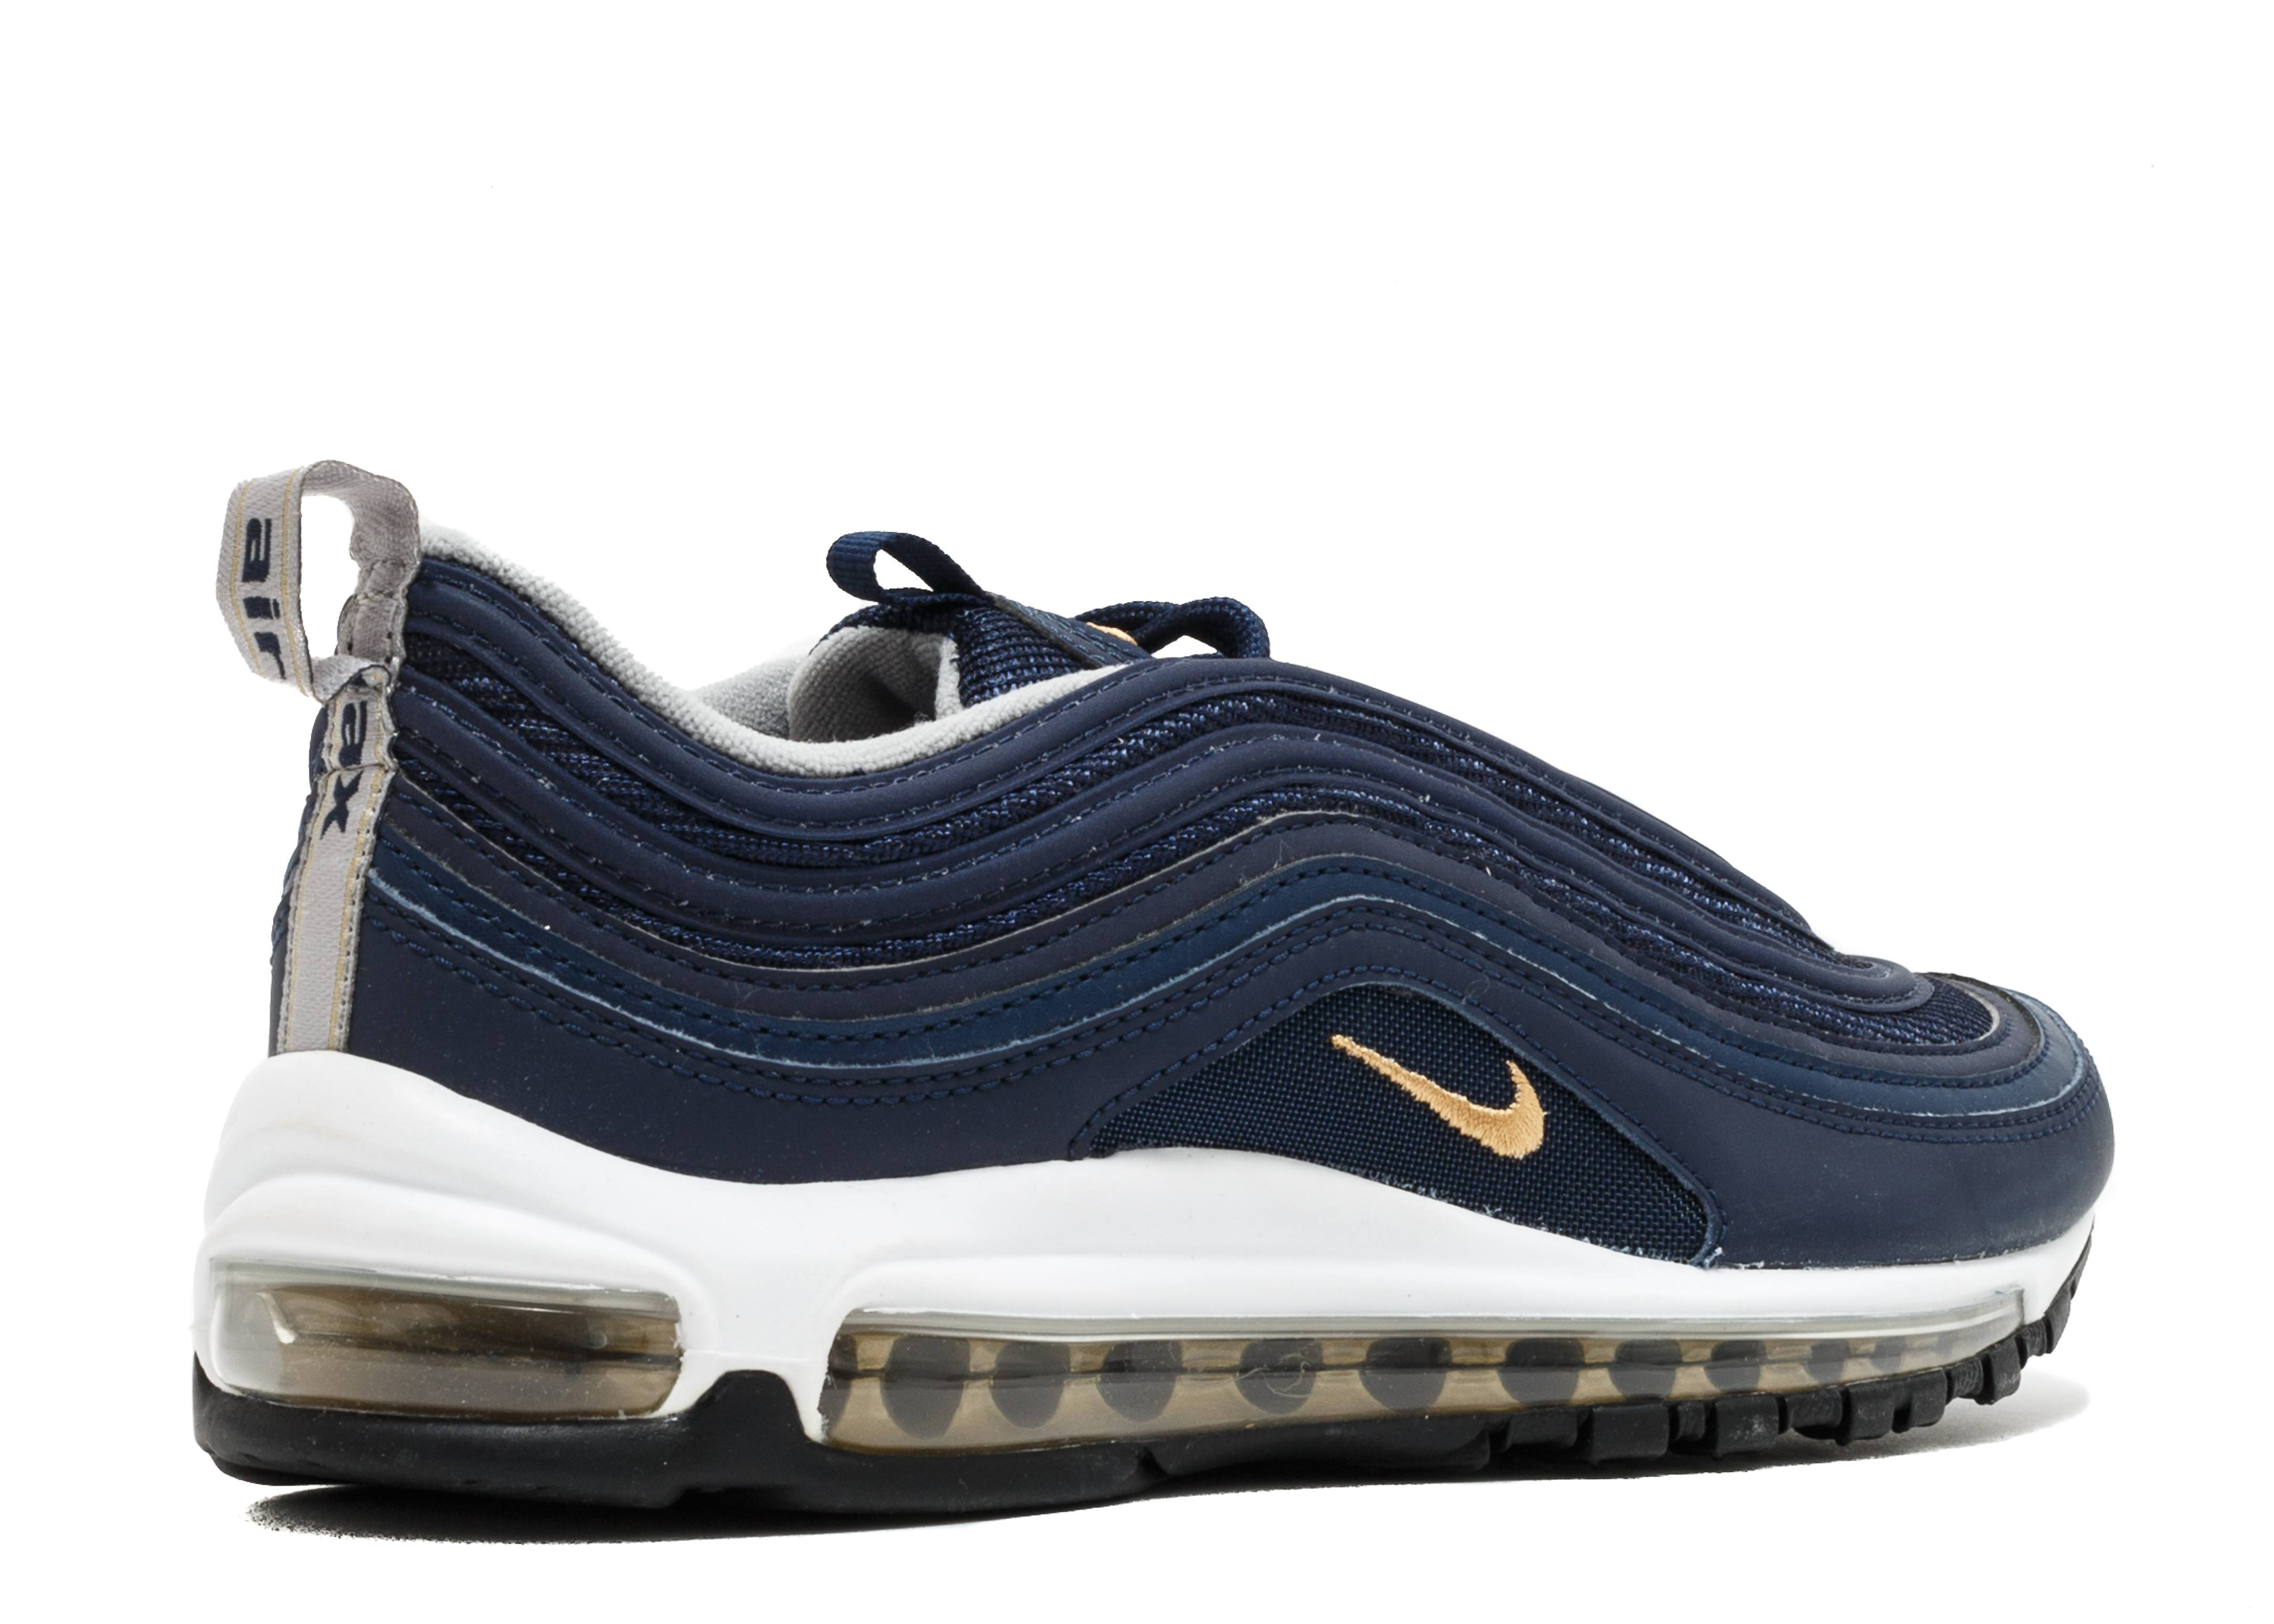 Nike Air Max Women Navy Gold - Musée des impressionnismes Giverny 51f20037b6b3